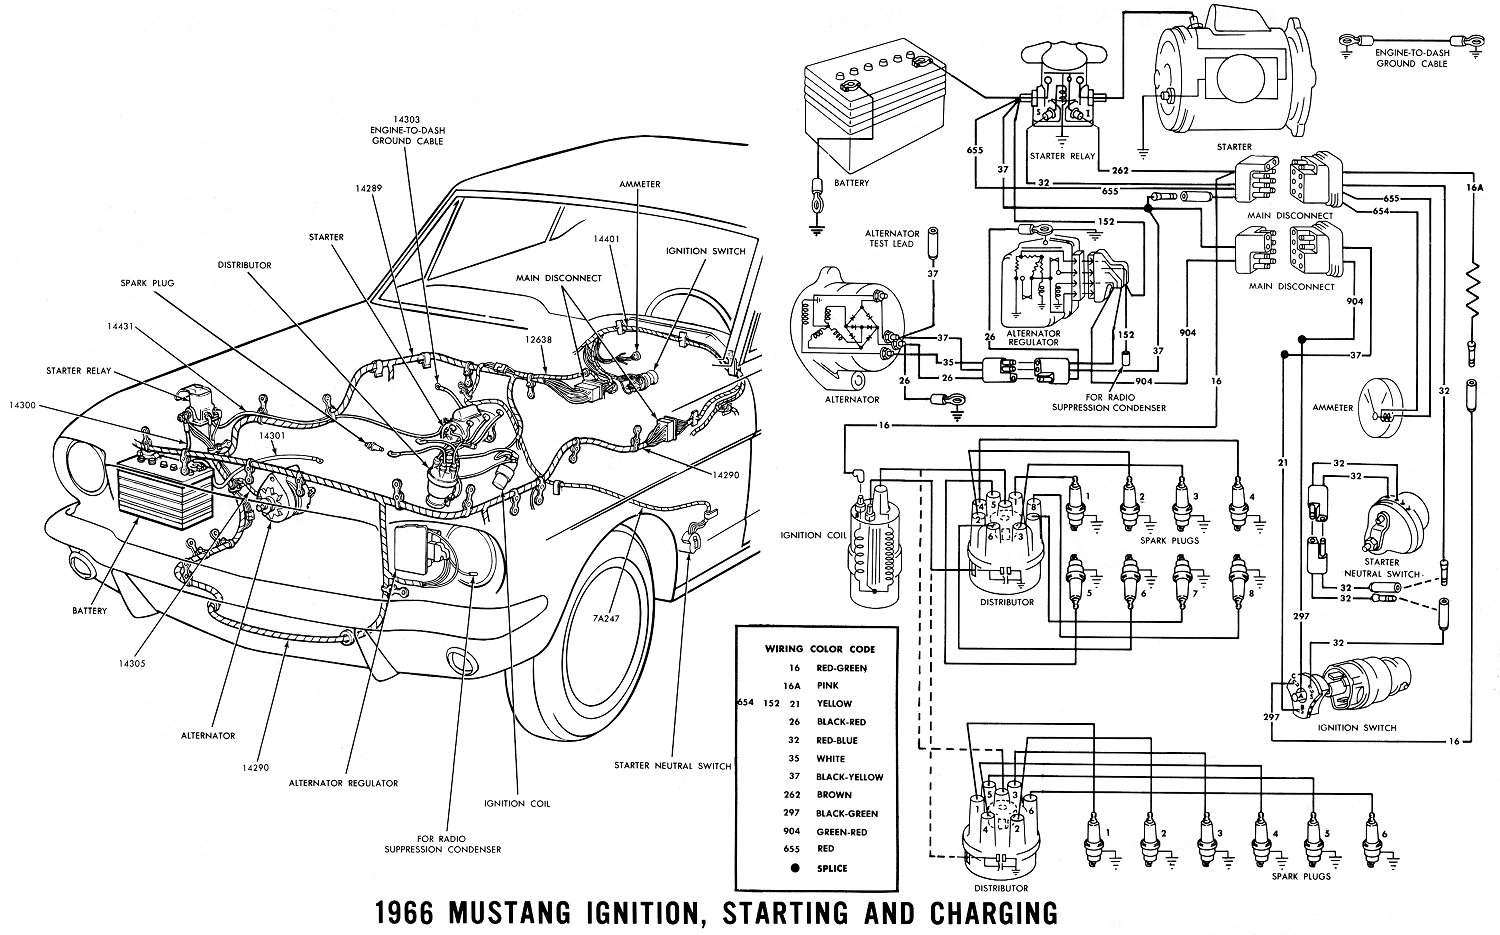 1968 mustang engine wiring diagram - wiring diagrams long poised-dish -  poised-dish.ipiccolidi3p.it  poised-dish.ipiccolidi3p.it